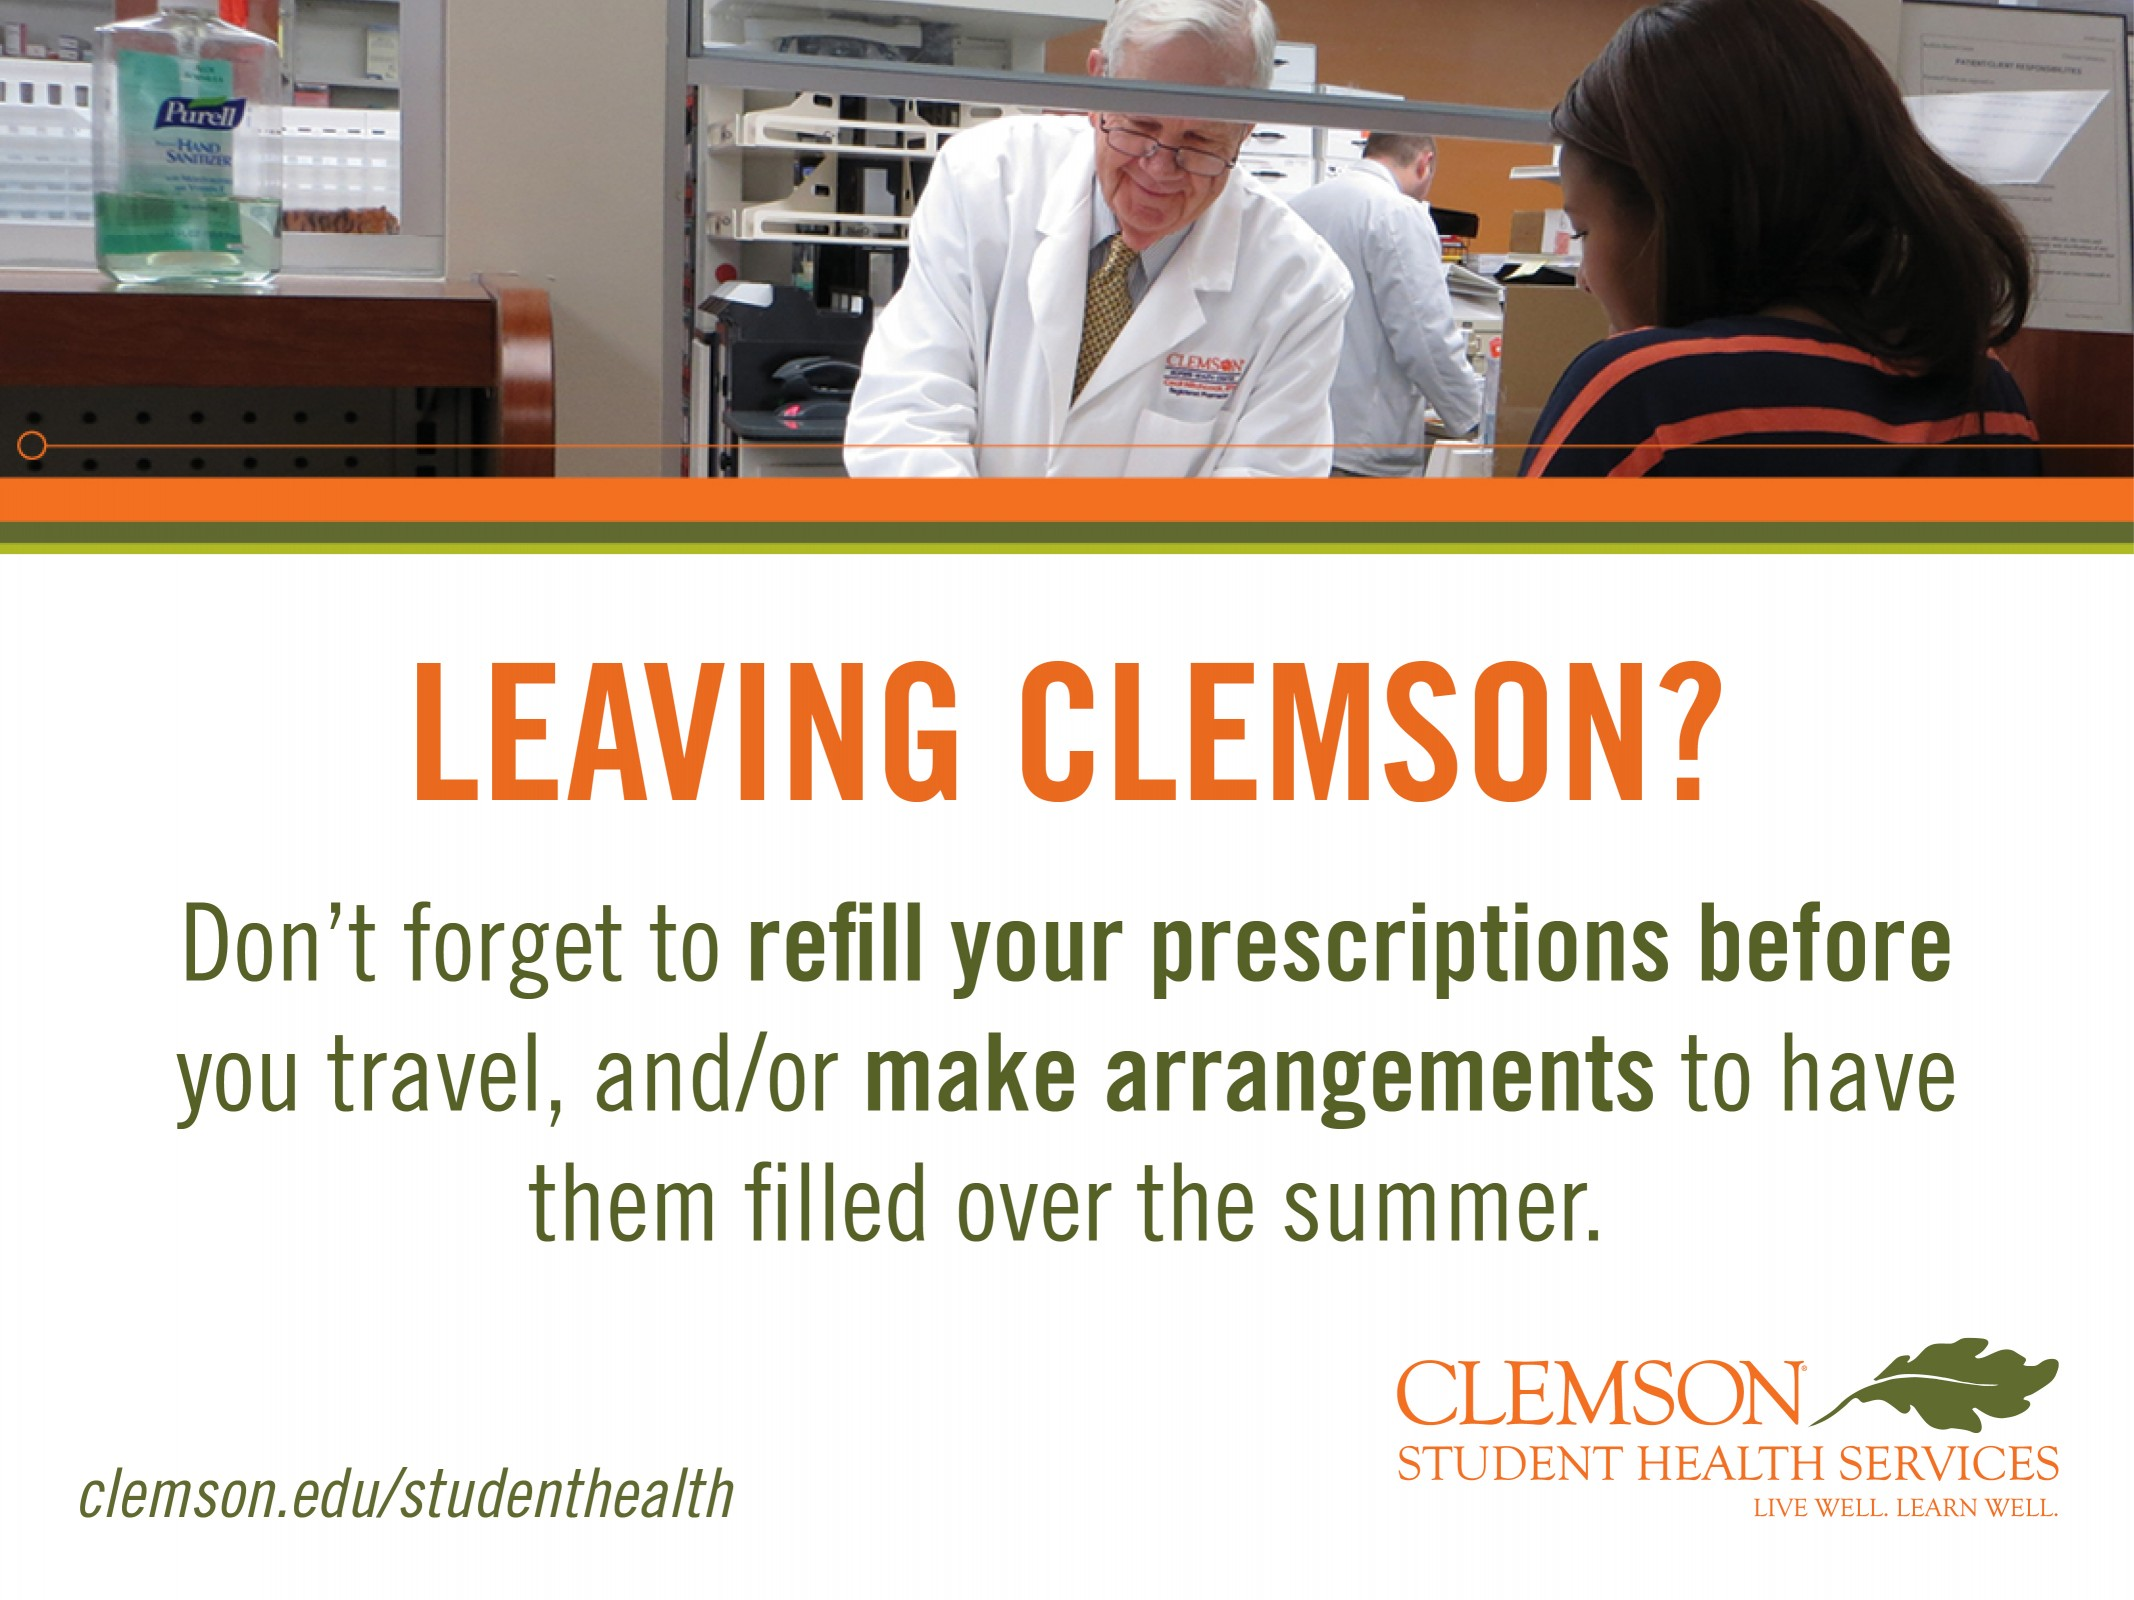 Refill your prescriptions in Redfern's pharmacy before you leave Clemson